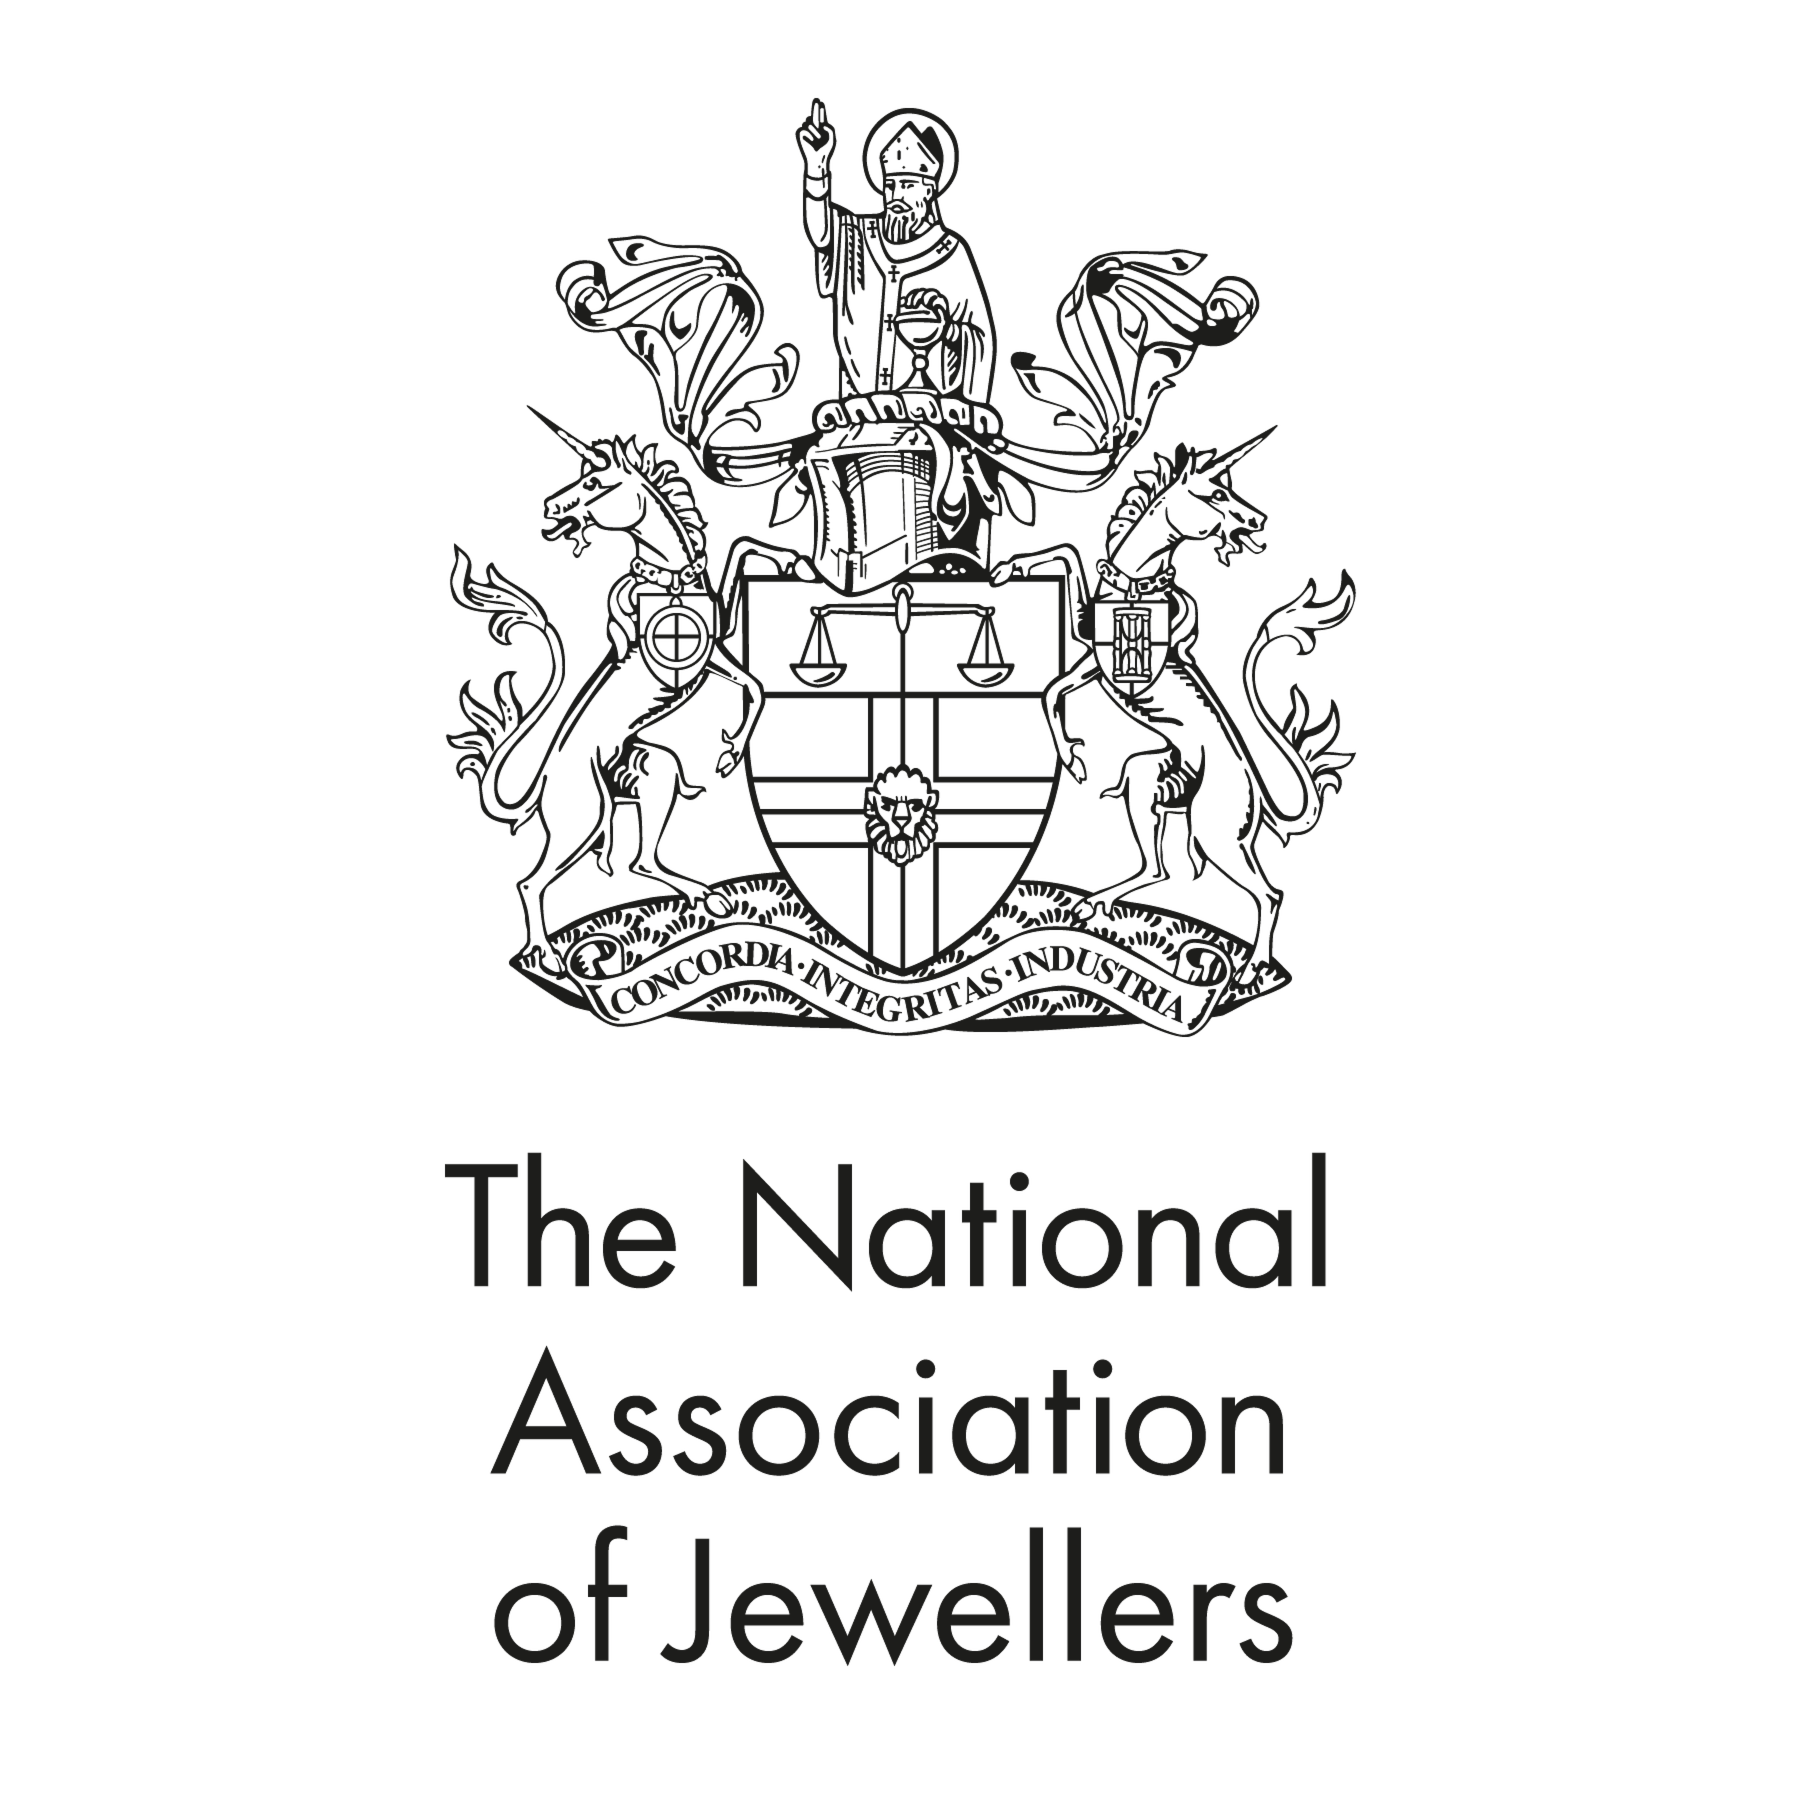 The NAJ National Association of Jewellers